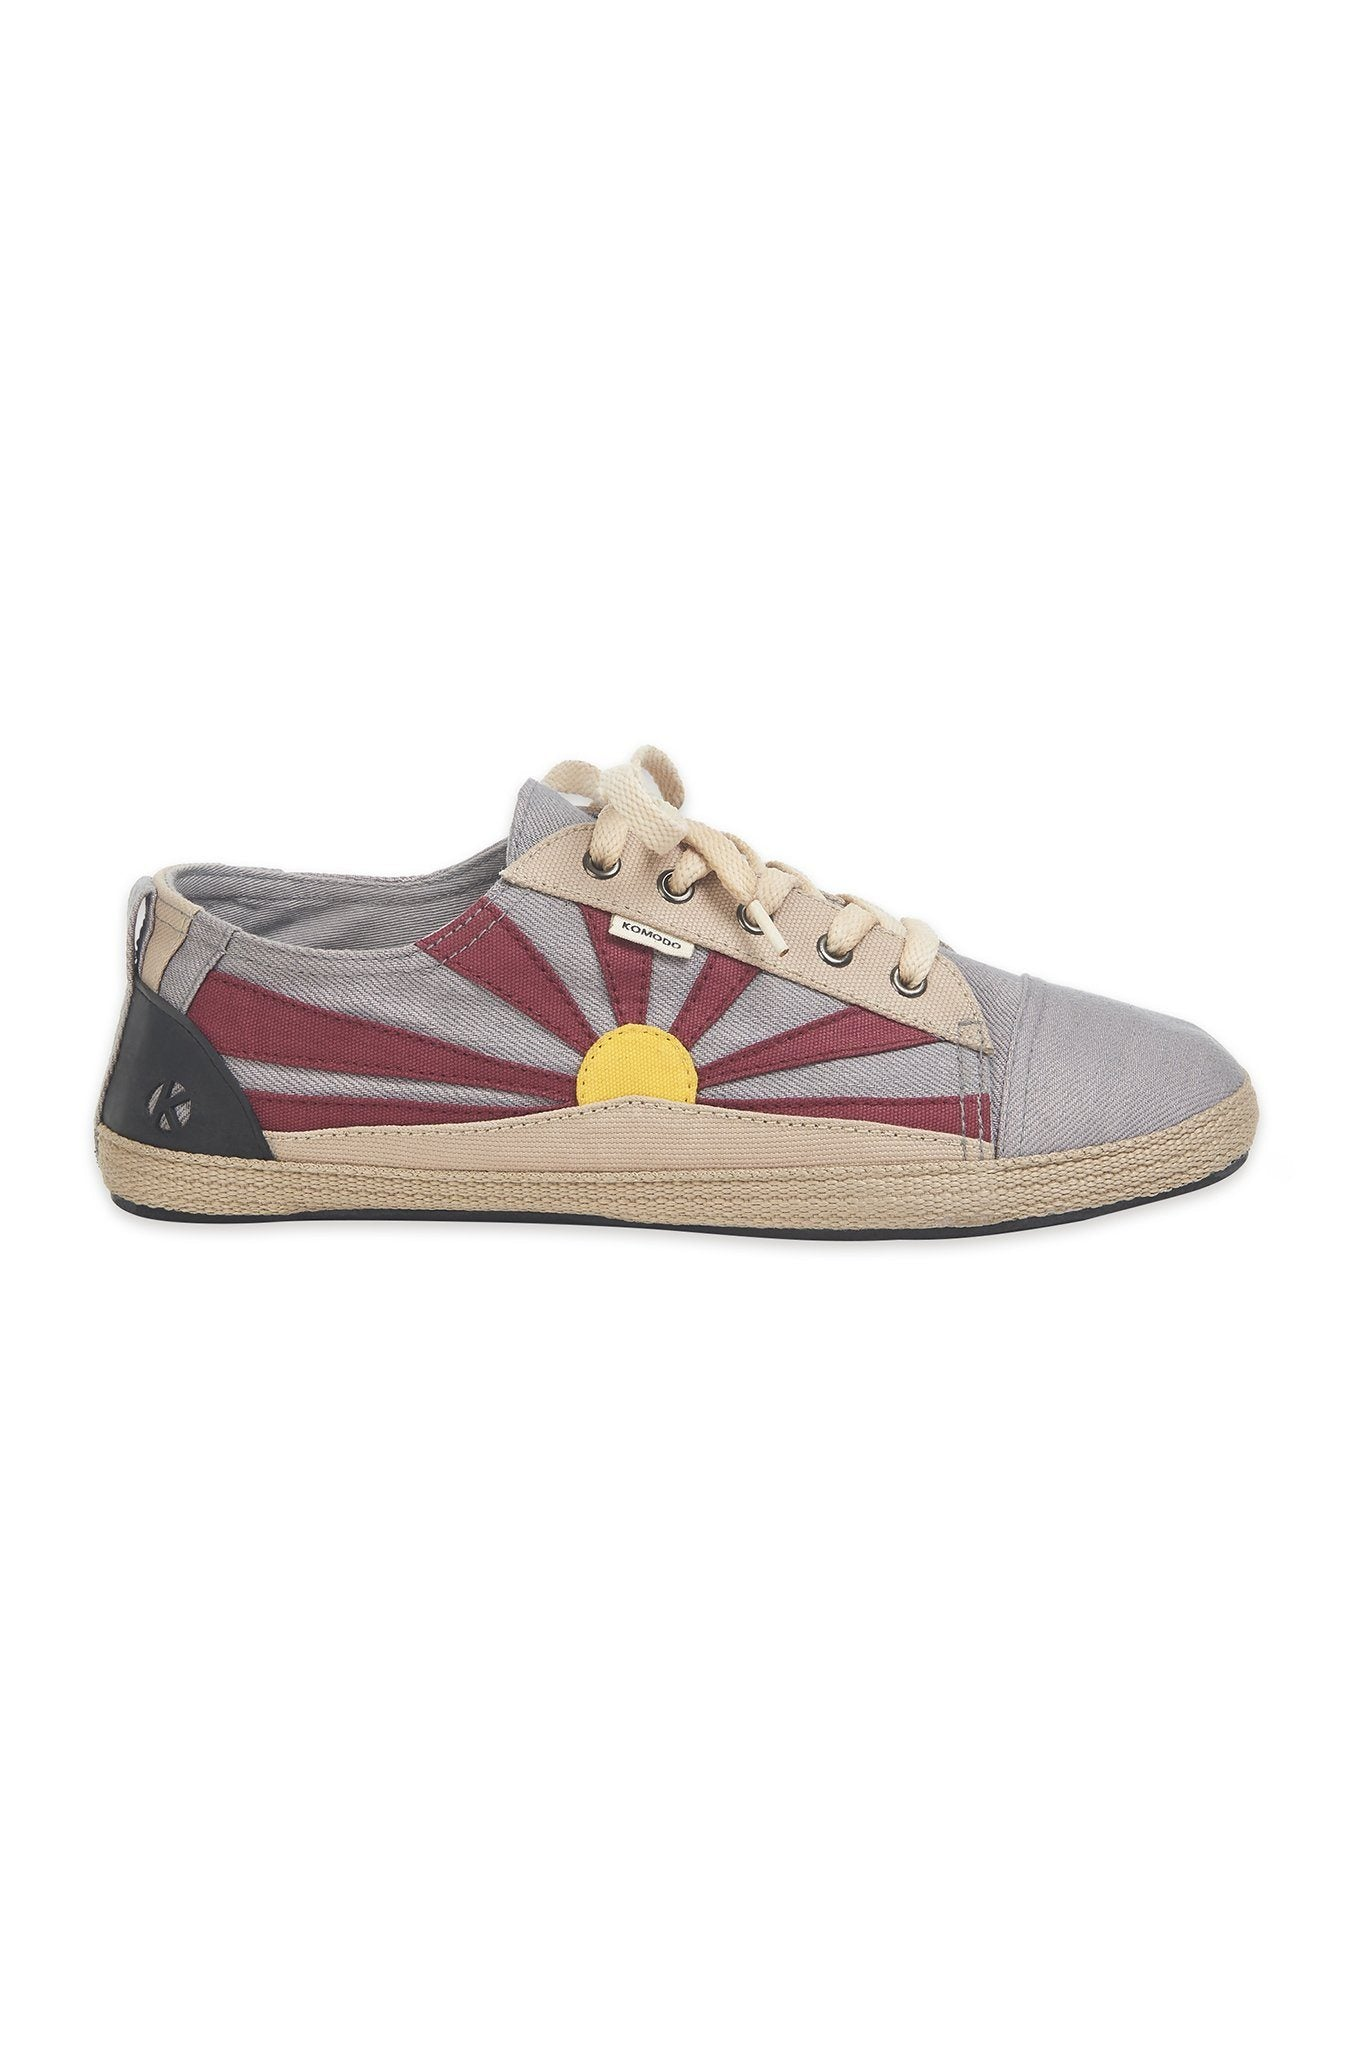 TIBET Grey Mens Shoes - Komodo Fashion